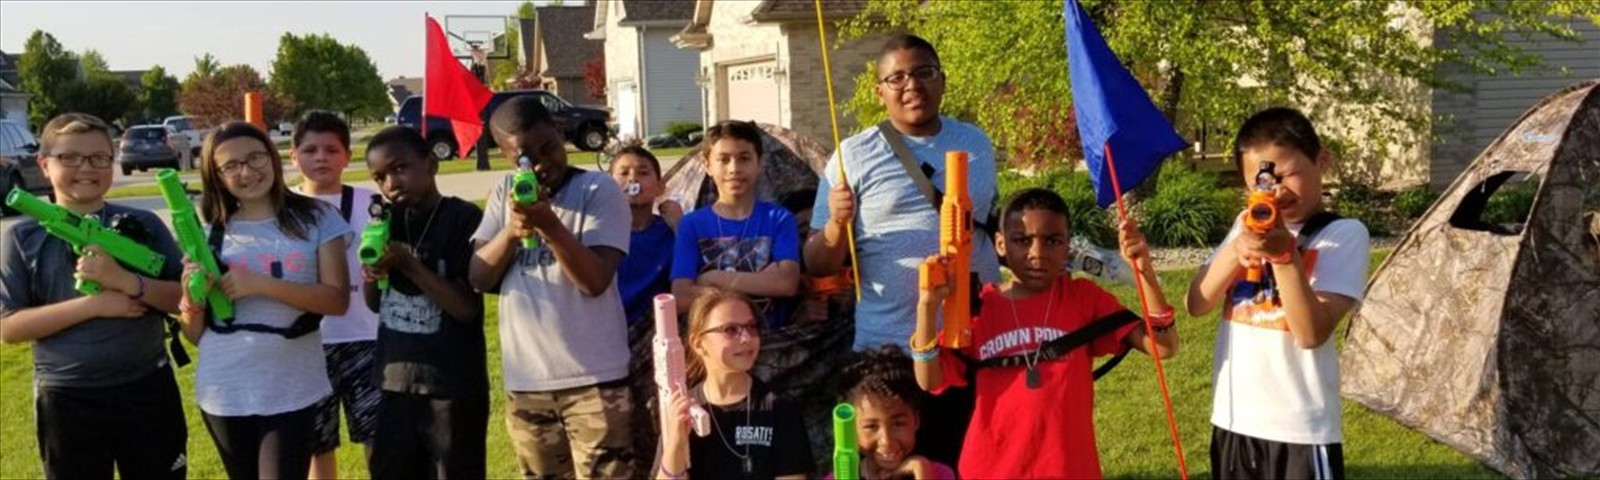 finger-lakes-laser-tag-party-new-york-group-2